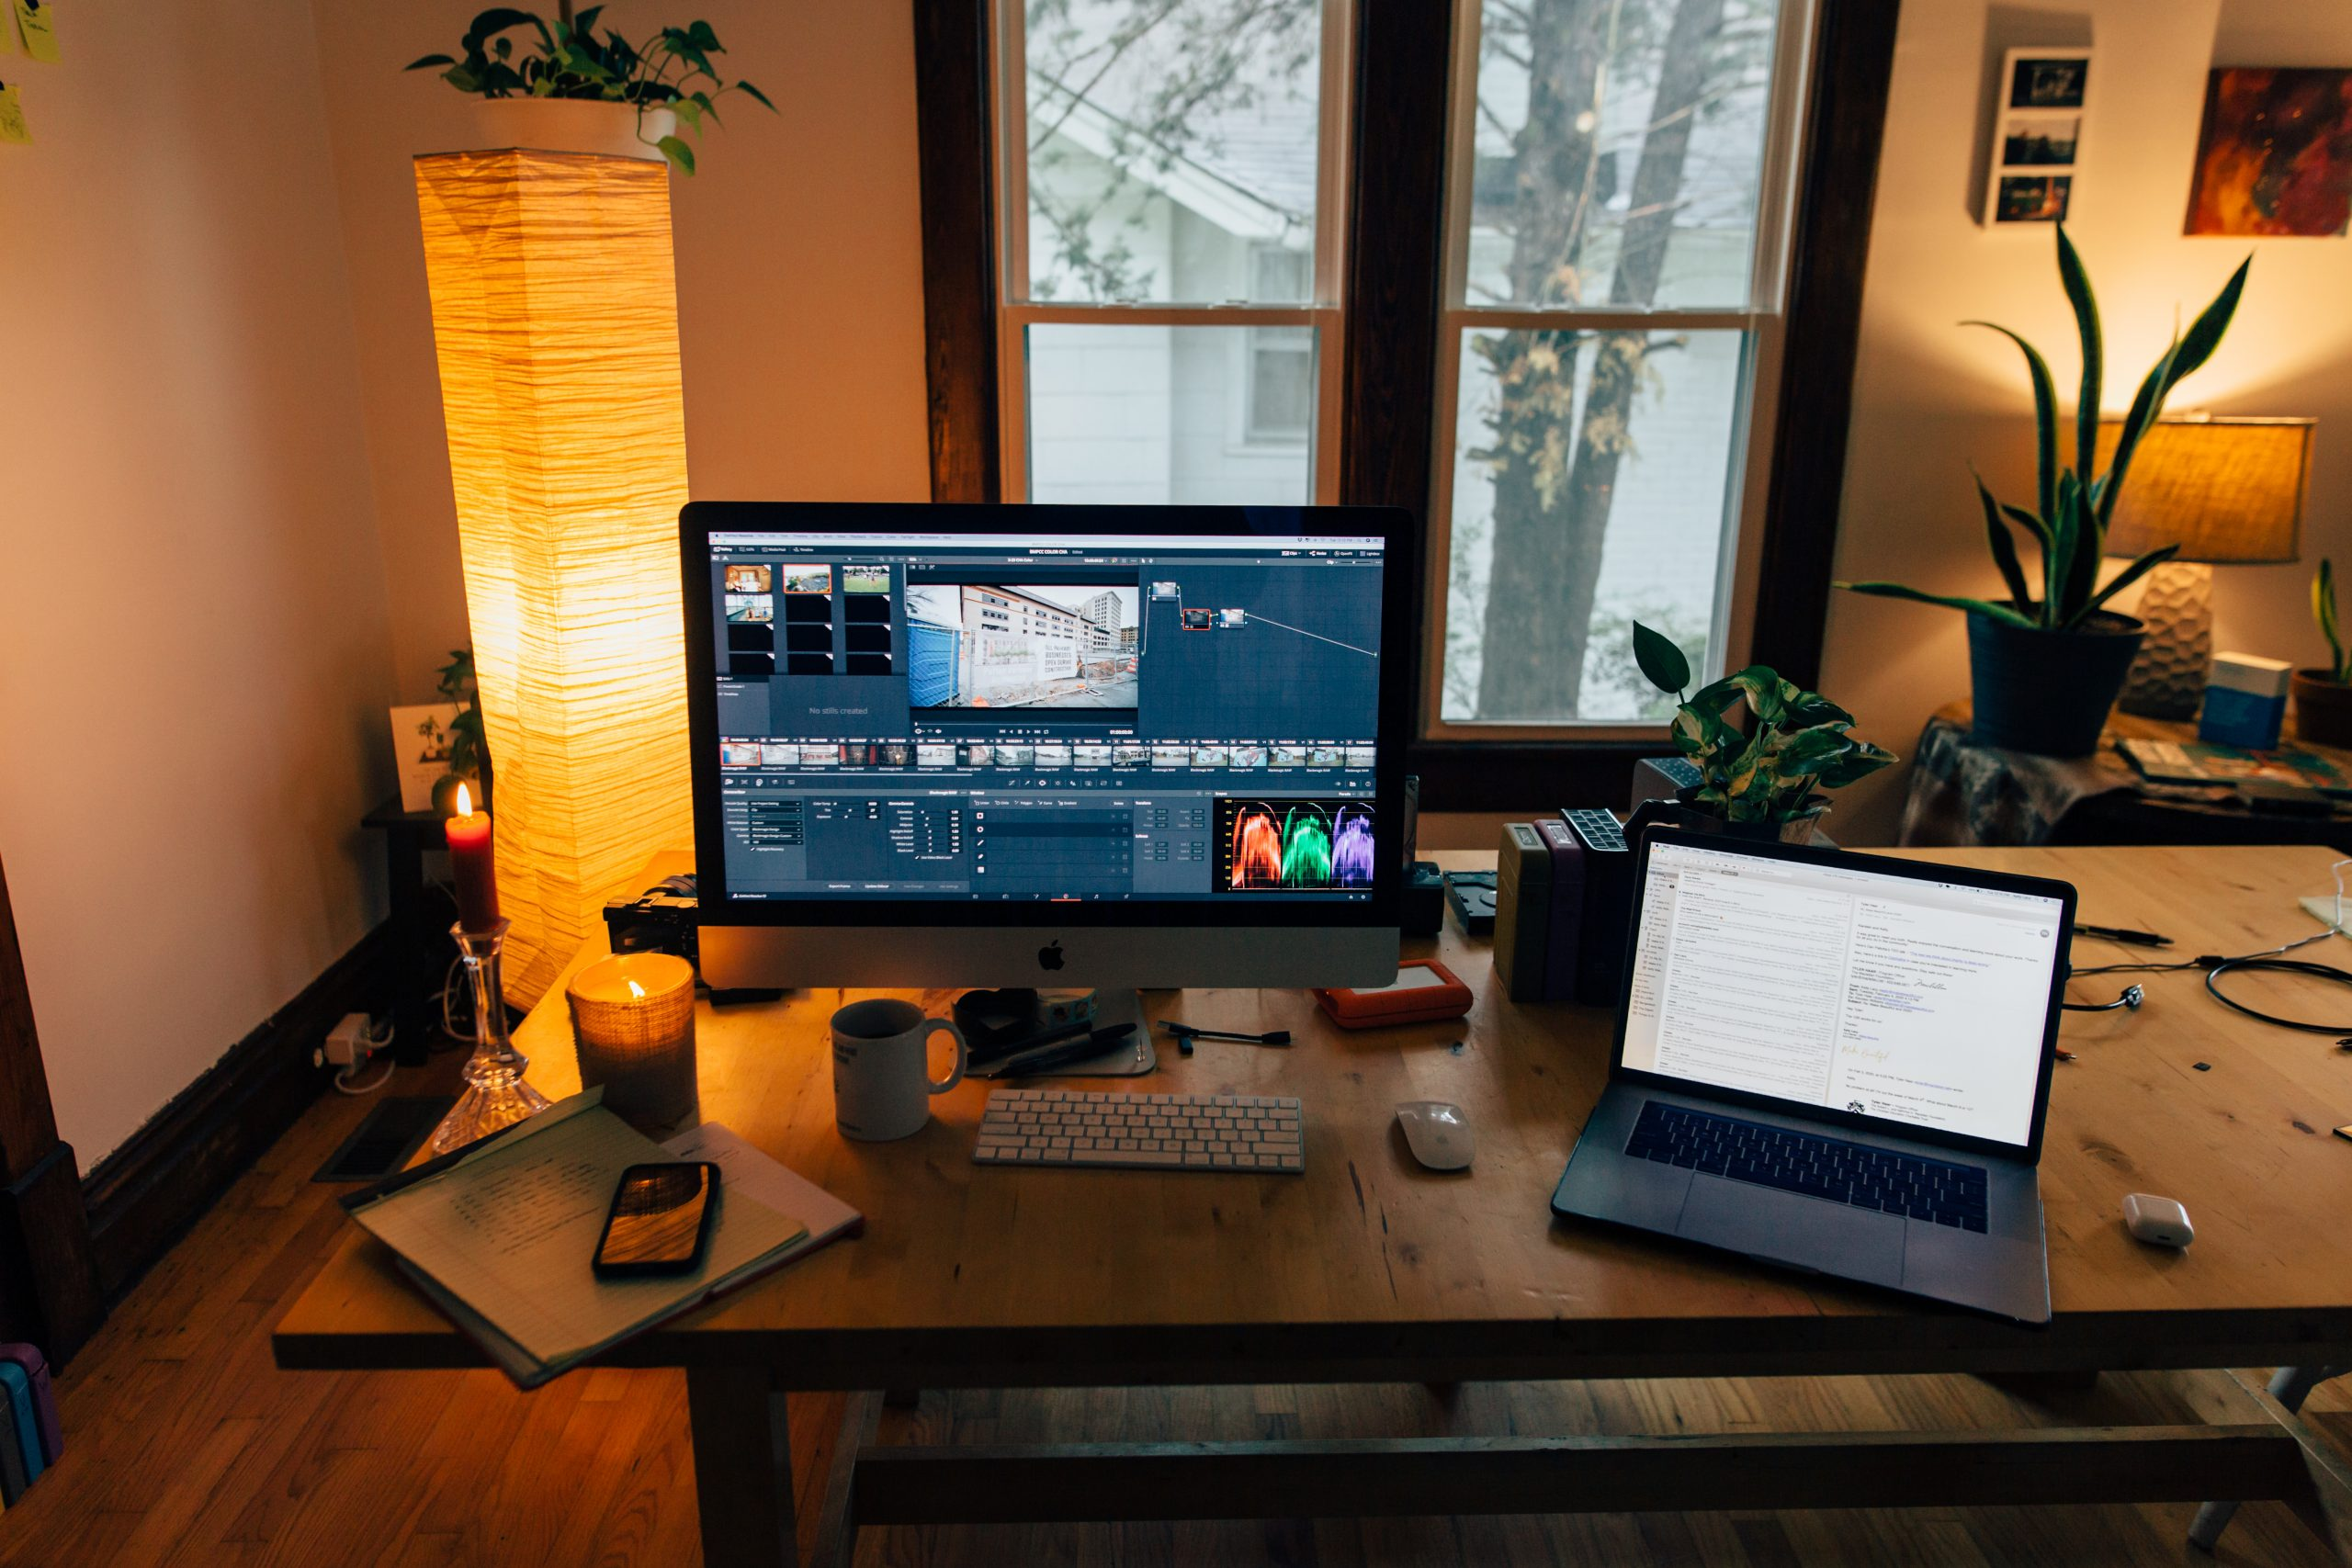 Modern workplace with gadgets in cozy room with soft light